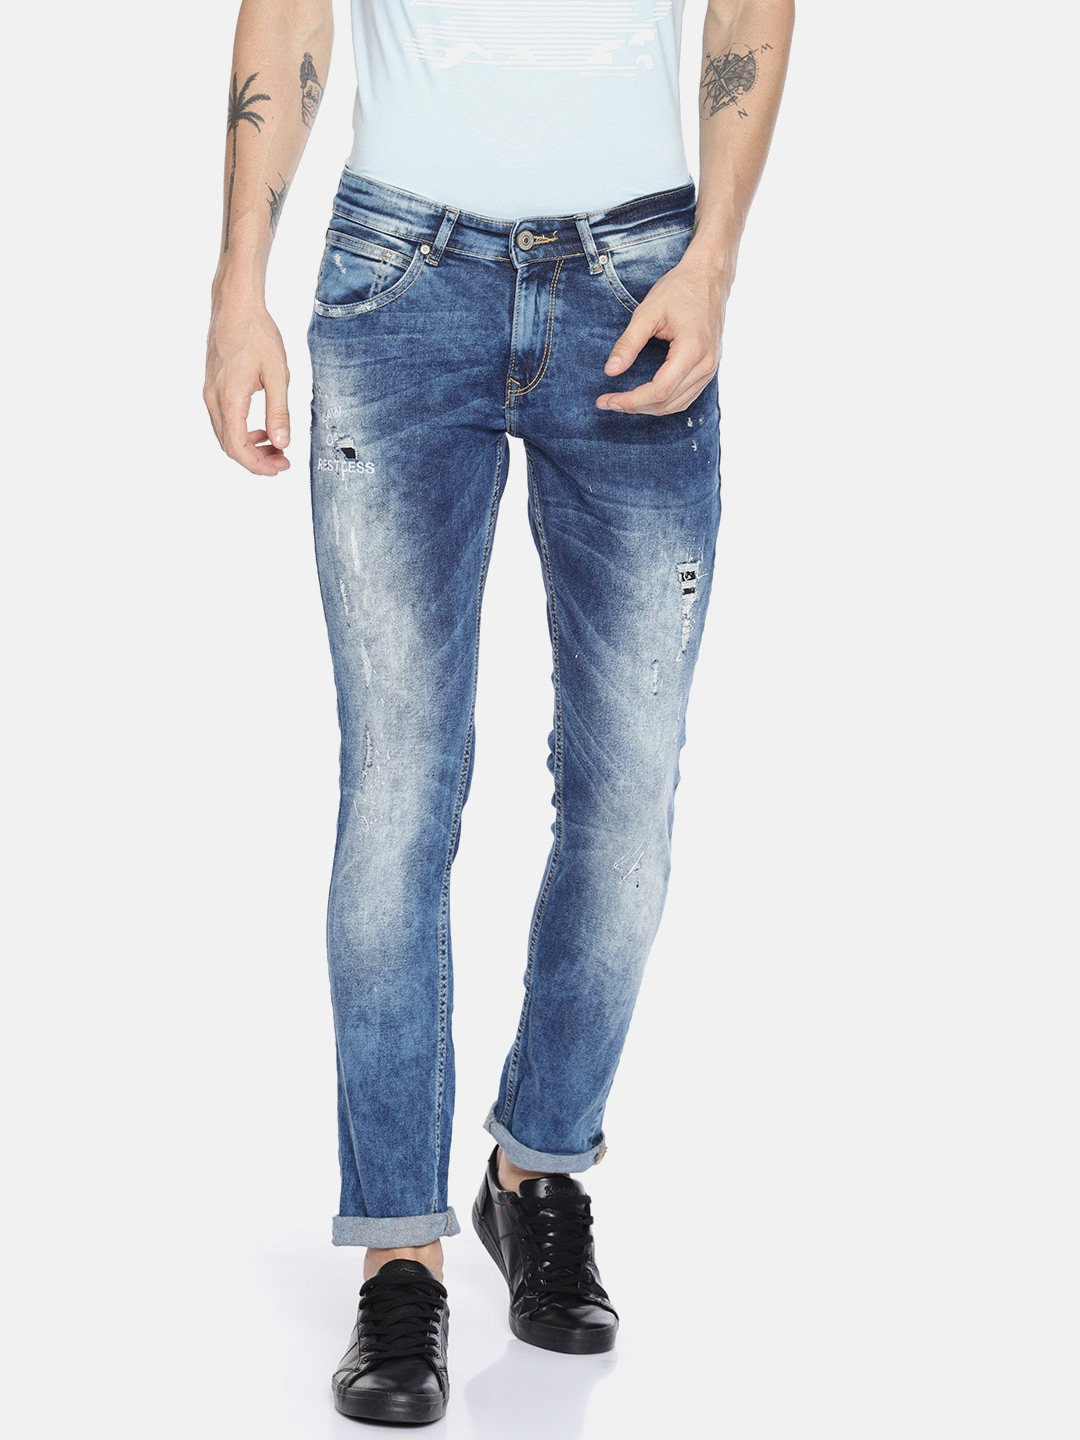 daee2cd88bc237 Jeans - Buy Jeans for Men, Women & Kids Online in India | Myntra